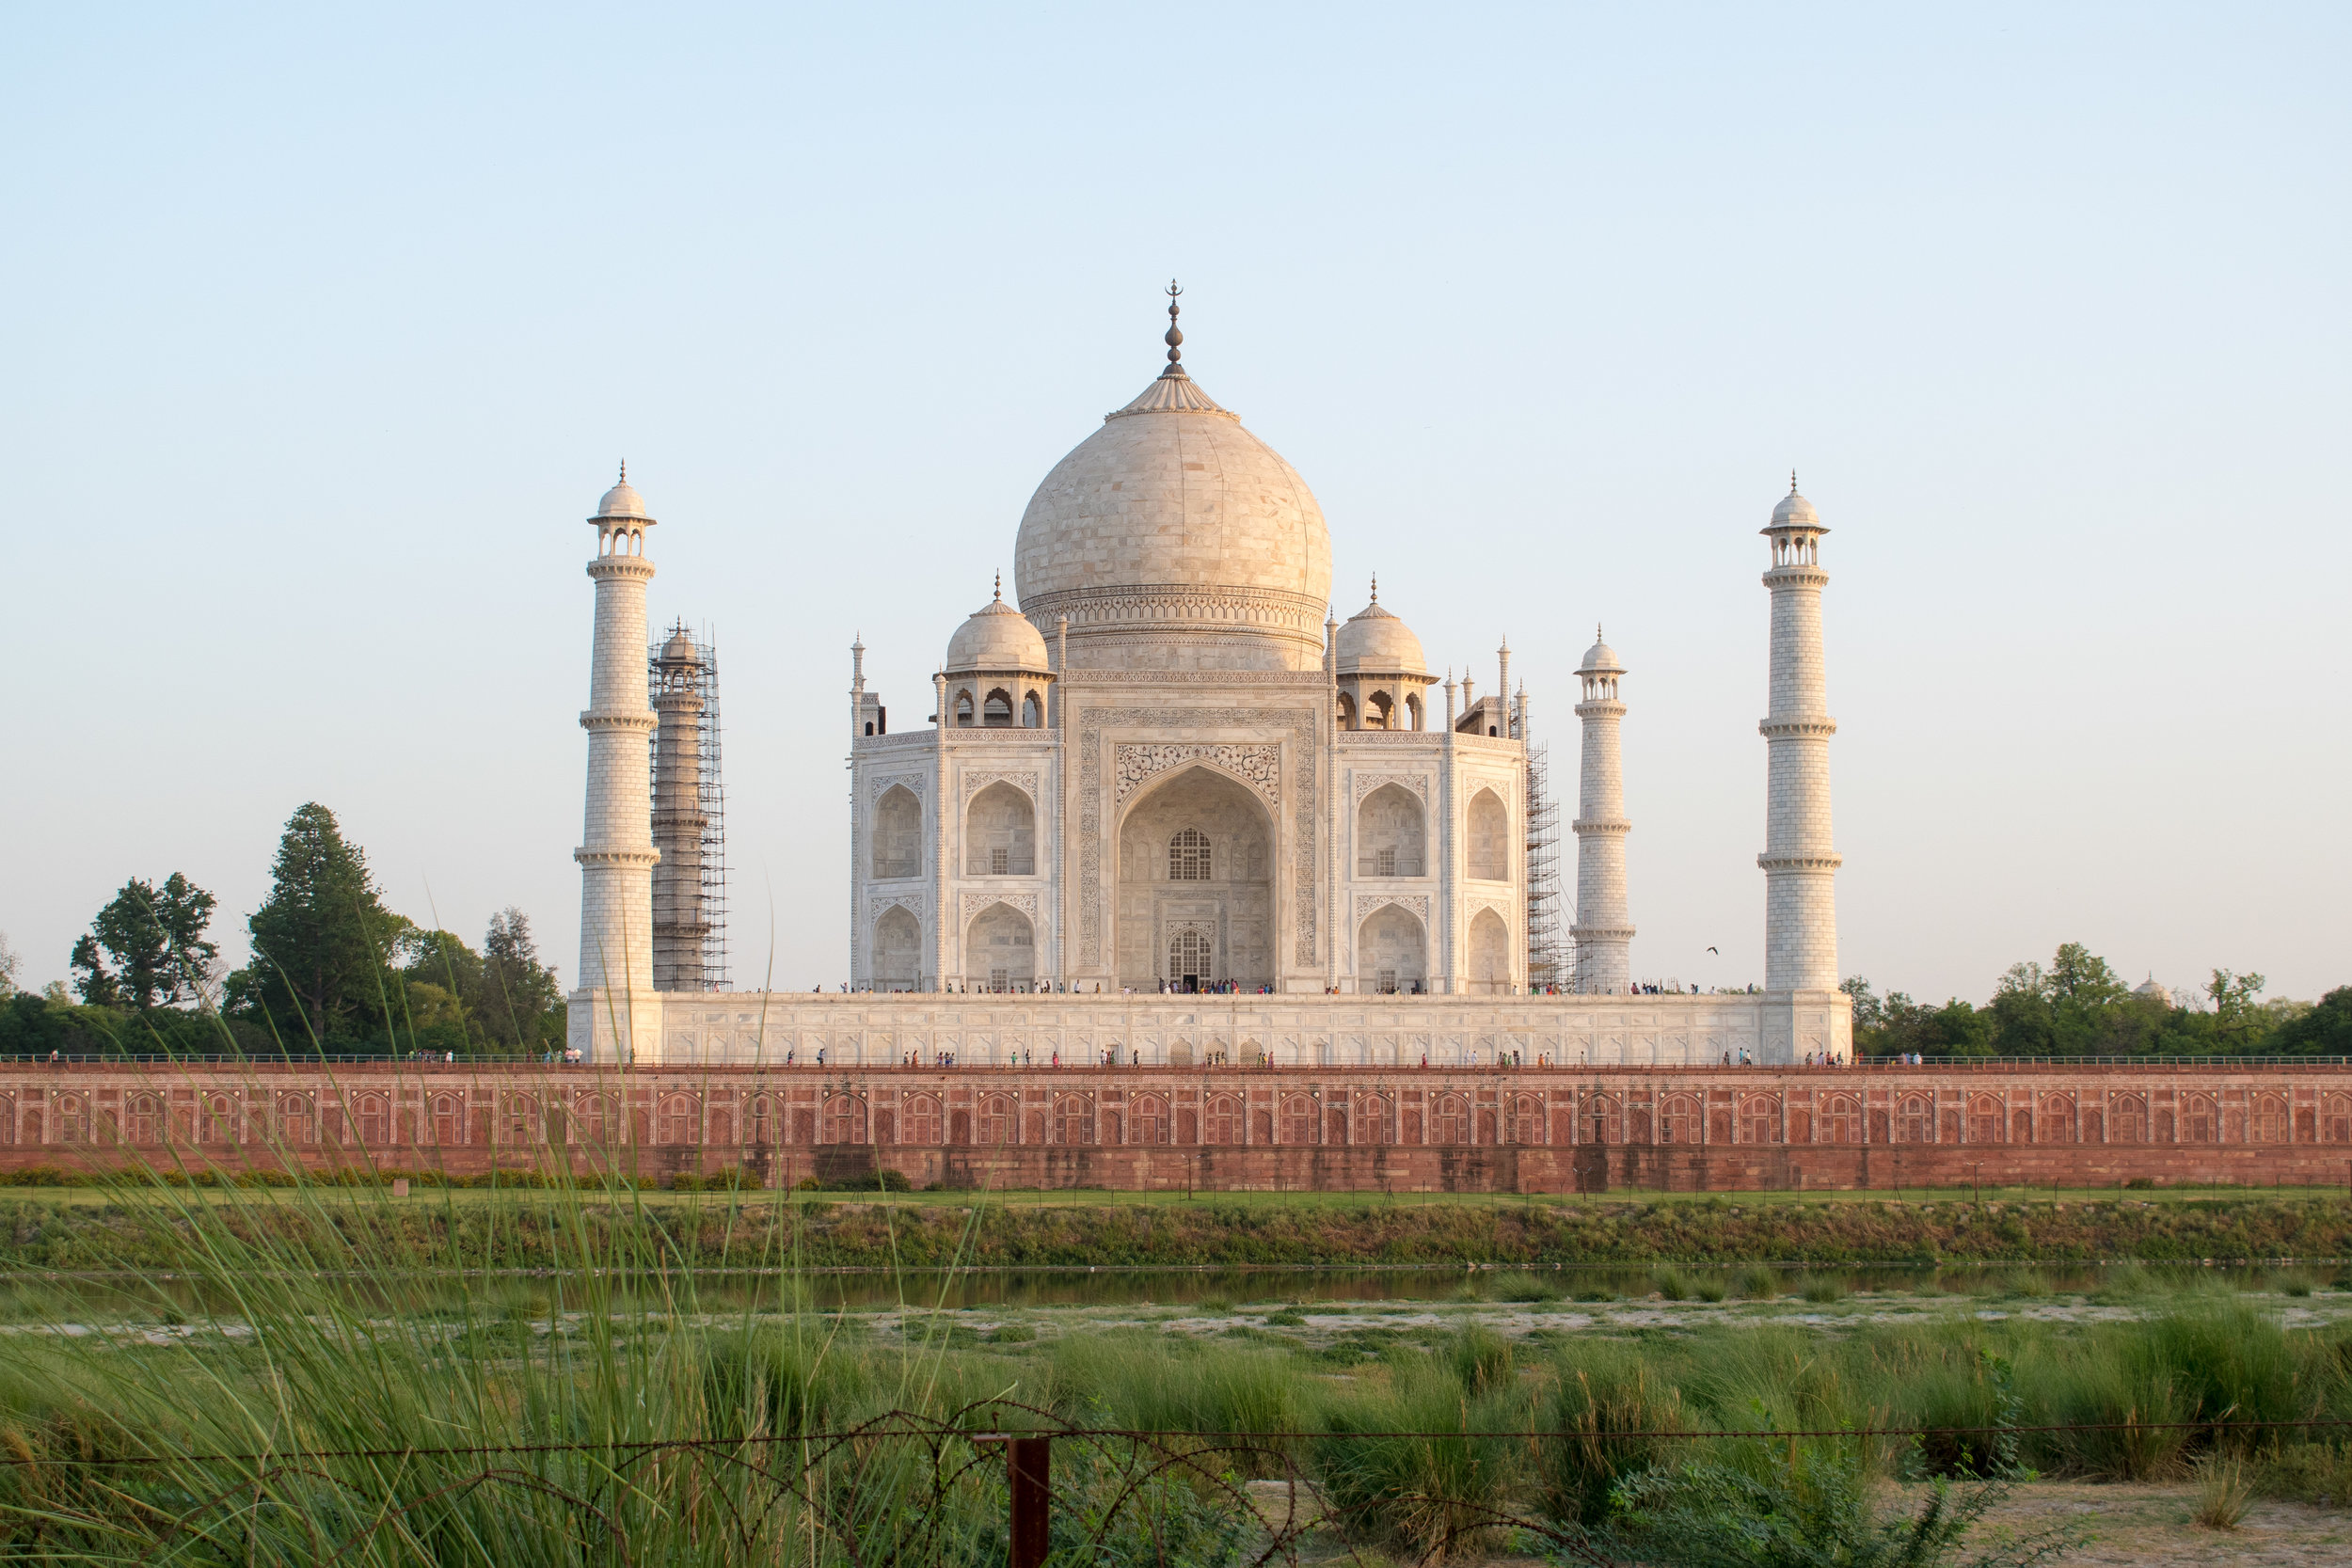 The Taj Mahal From Across The River in India